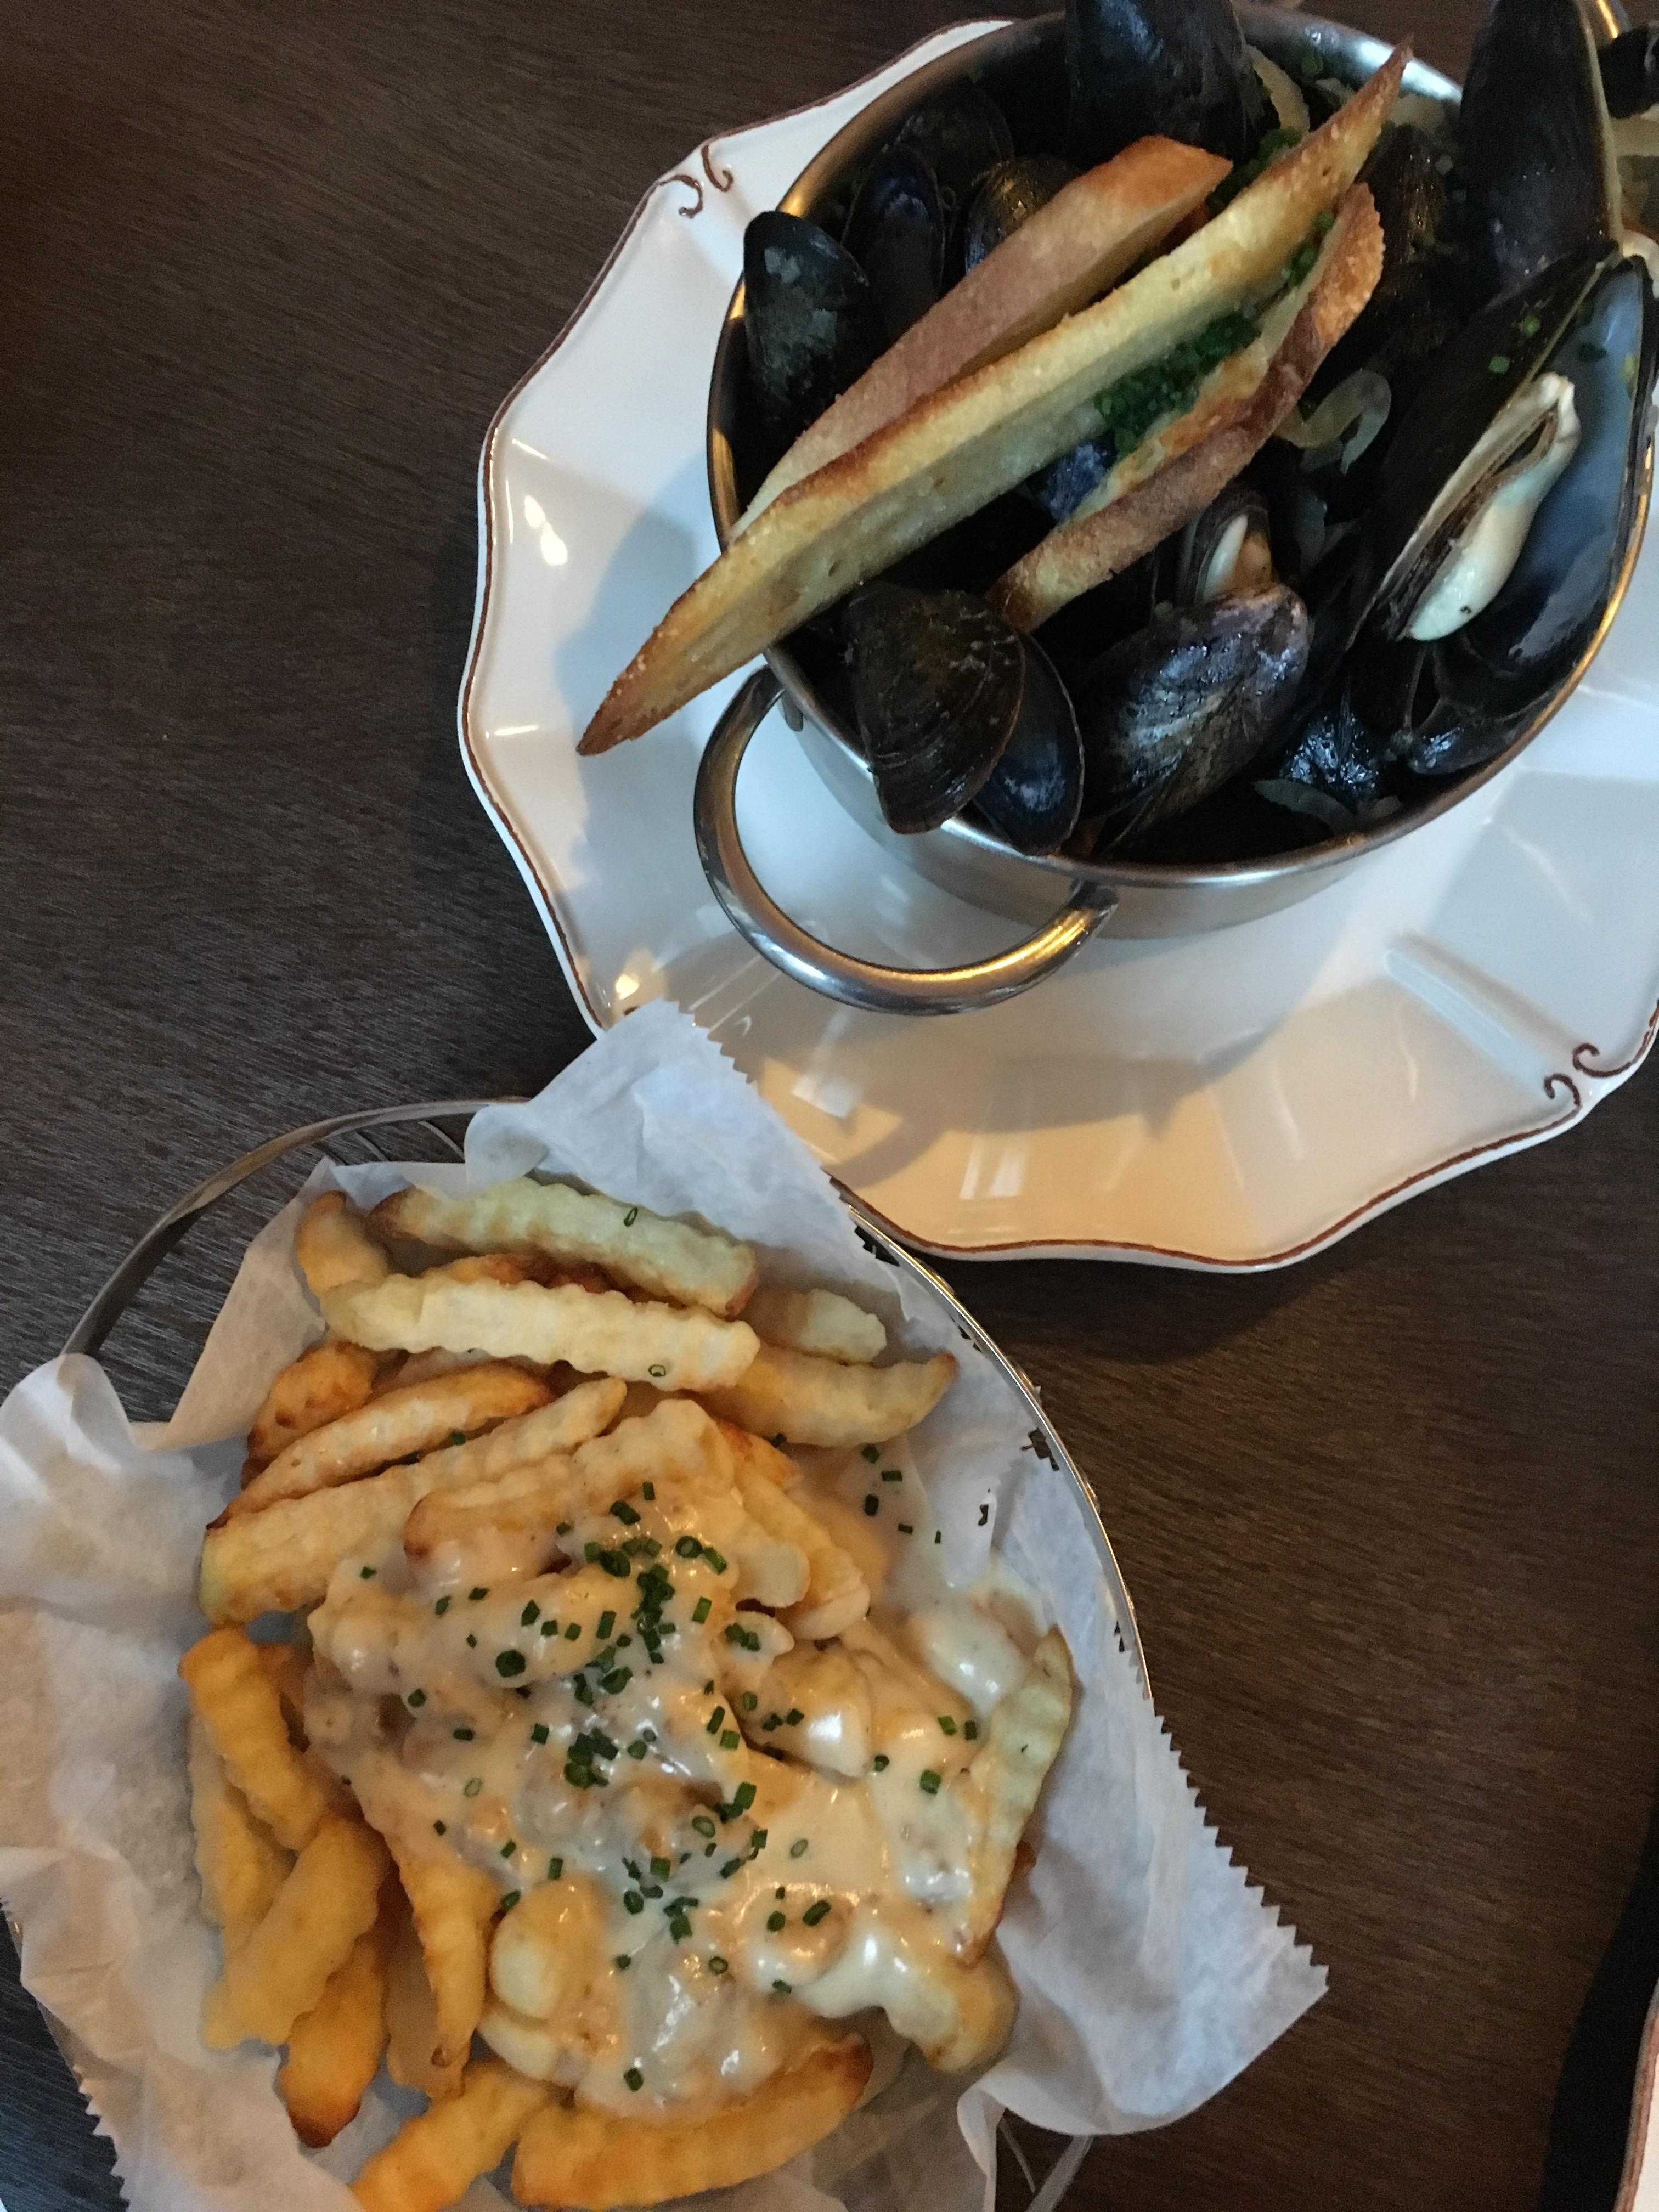 Mussels and frites at at Delirium Café USA. (Image: Lani Furbank)